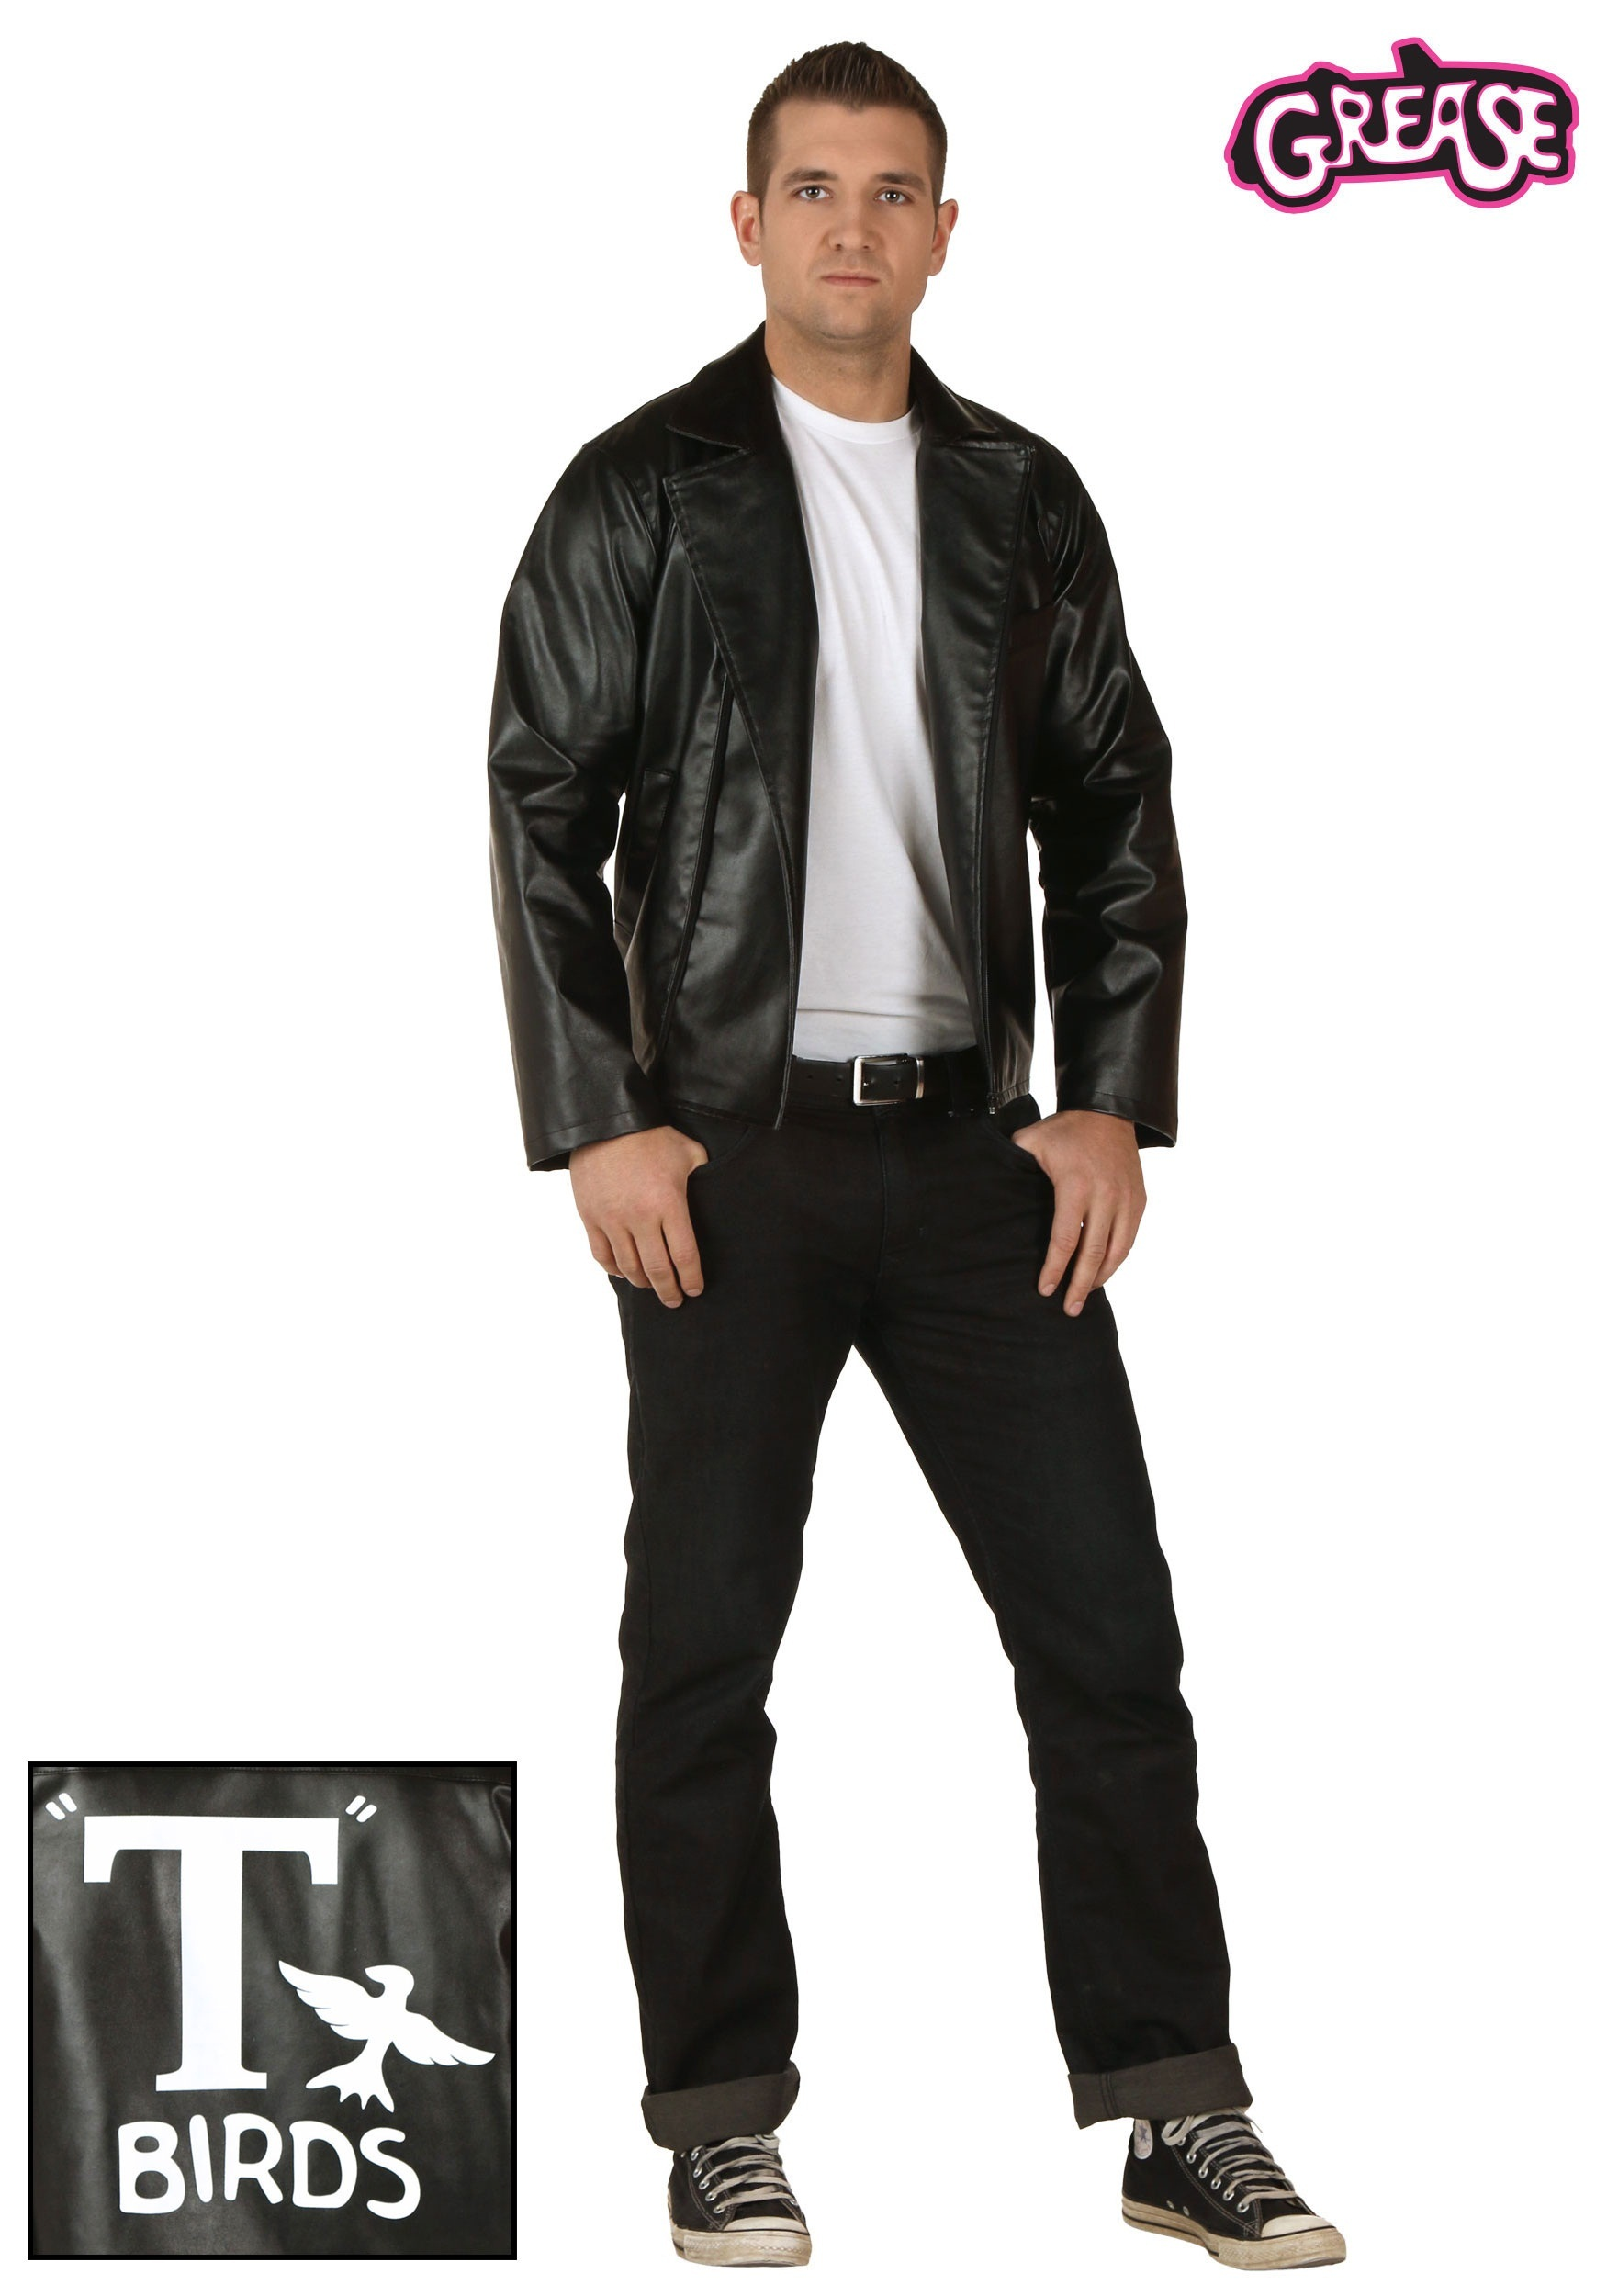 costumes plus size men s costumes theme costumes tv movie costumes